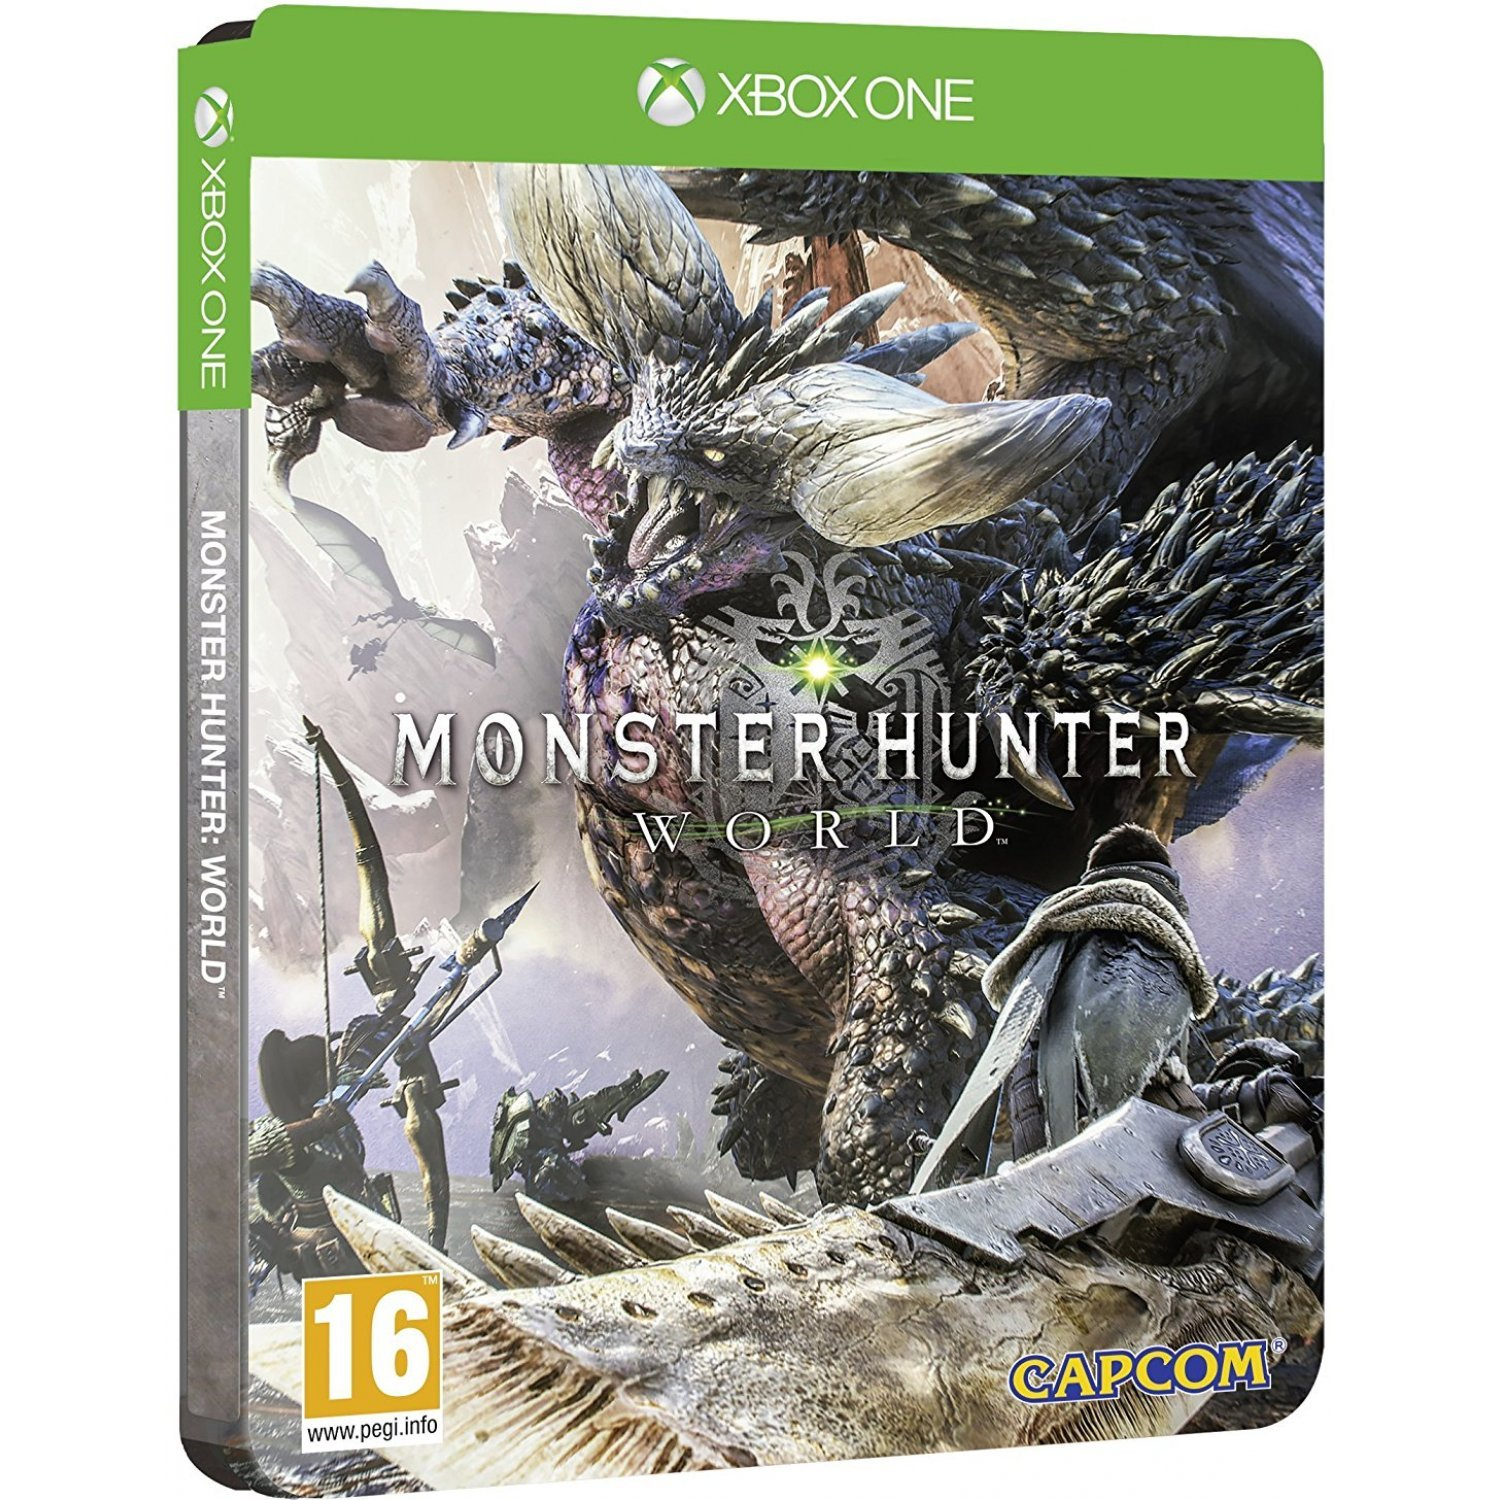 Book Cover Diy Xbox One : Monster hunter world steelbook edition